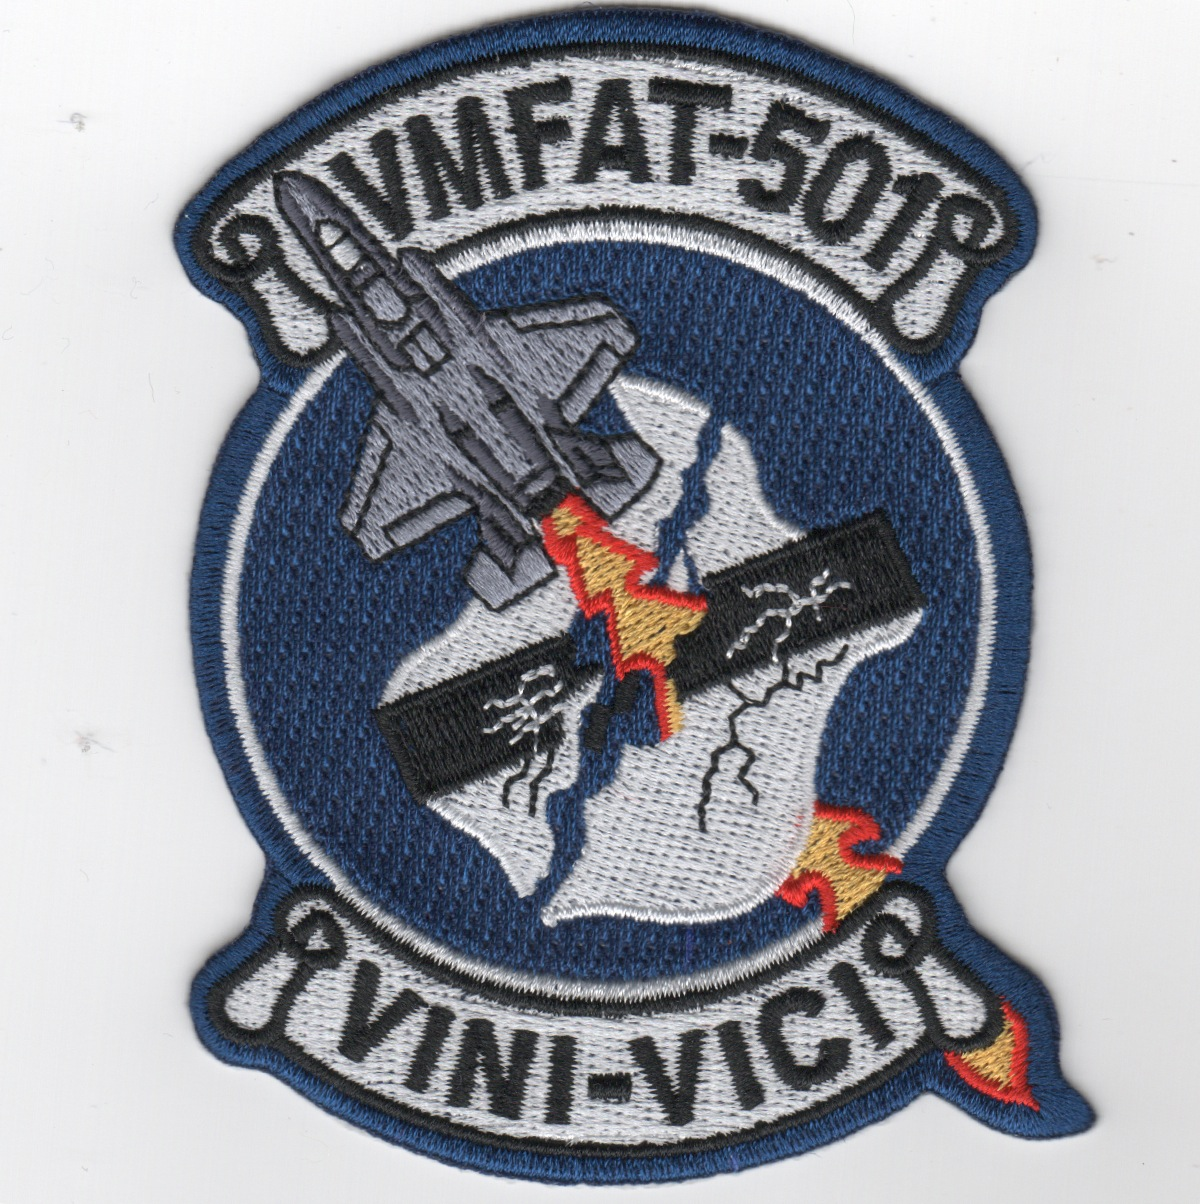 VMFAT-501 Squadron Patch (F-35)